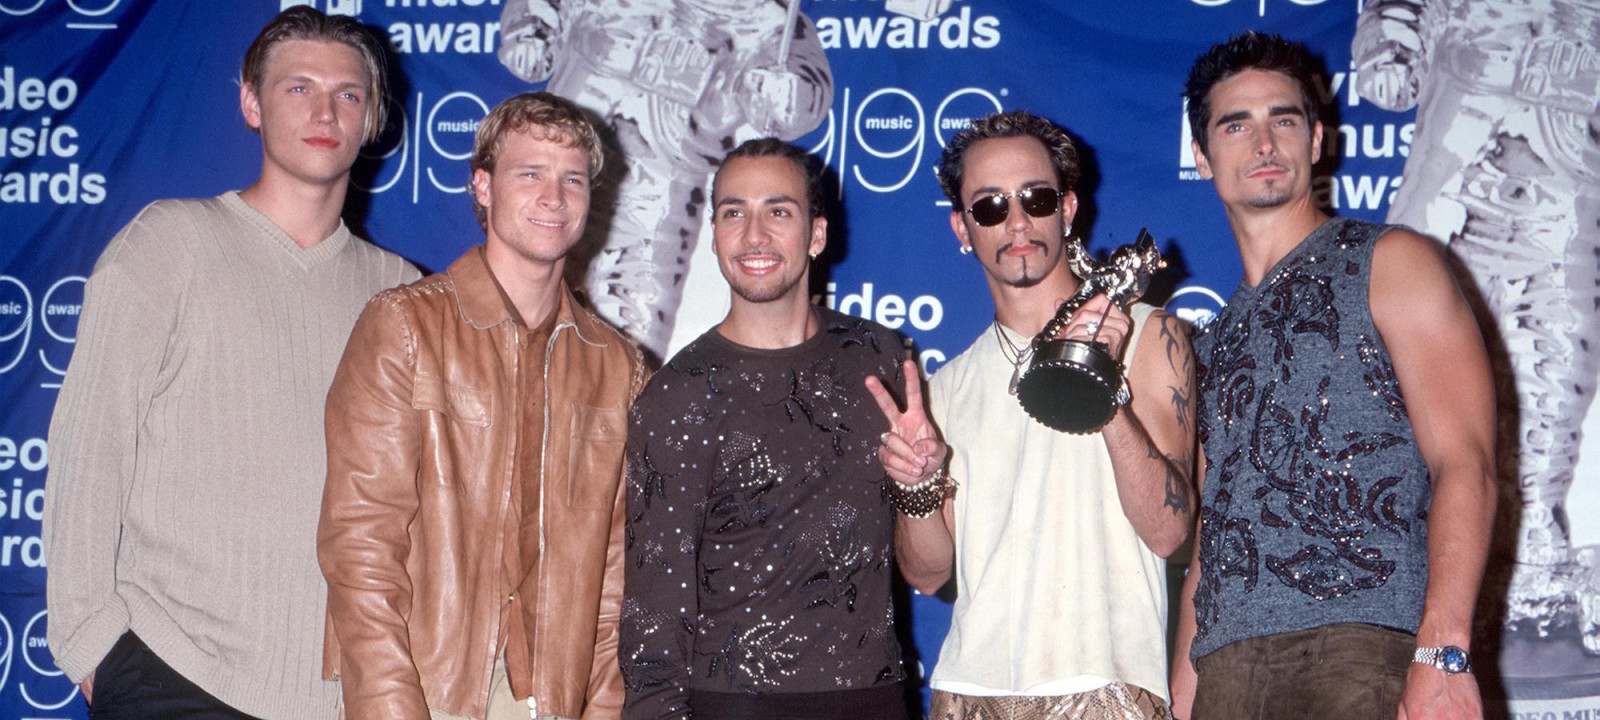 Backstreet Boys backstage at the MTV Video Music Awards. From l-r: Nick Carter, Brian Littrell, Howie D, A.J. McLean and Kevin Richardson.